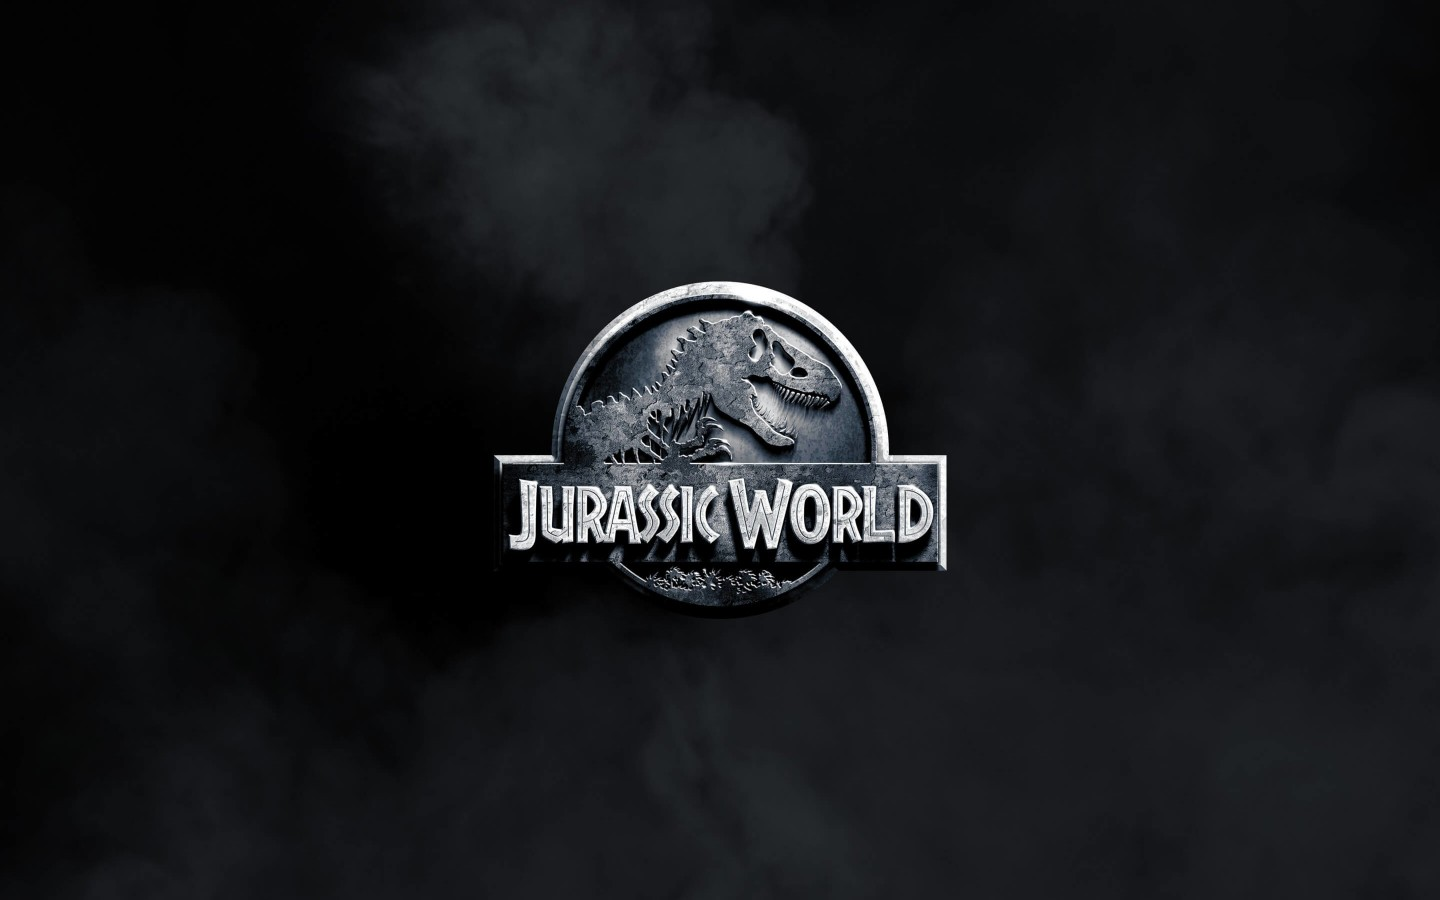 Jurassic World Wallpaper for Desktop 1440x900